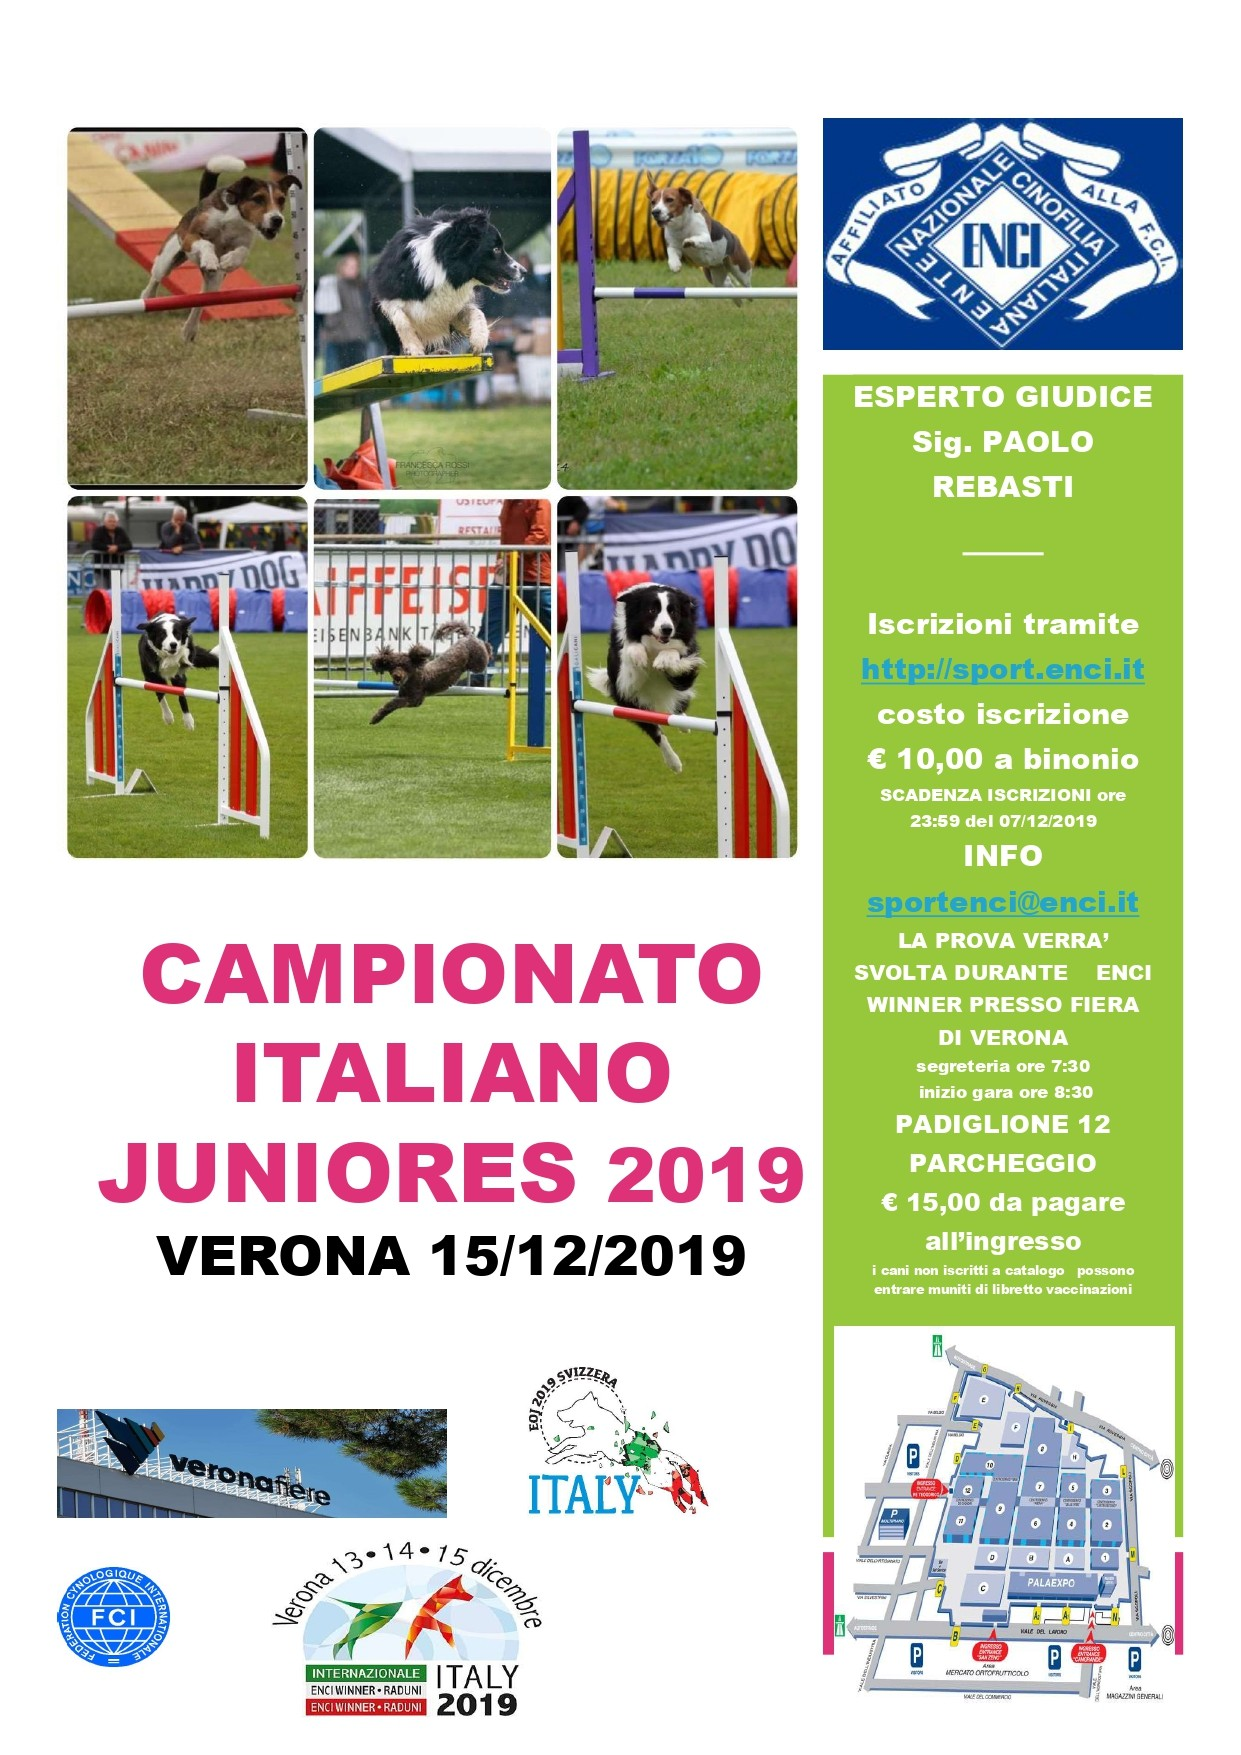 CAMPIONATO ITALIANO JUNIORES 2019 UNDER 15